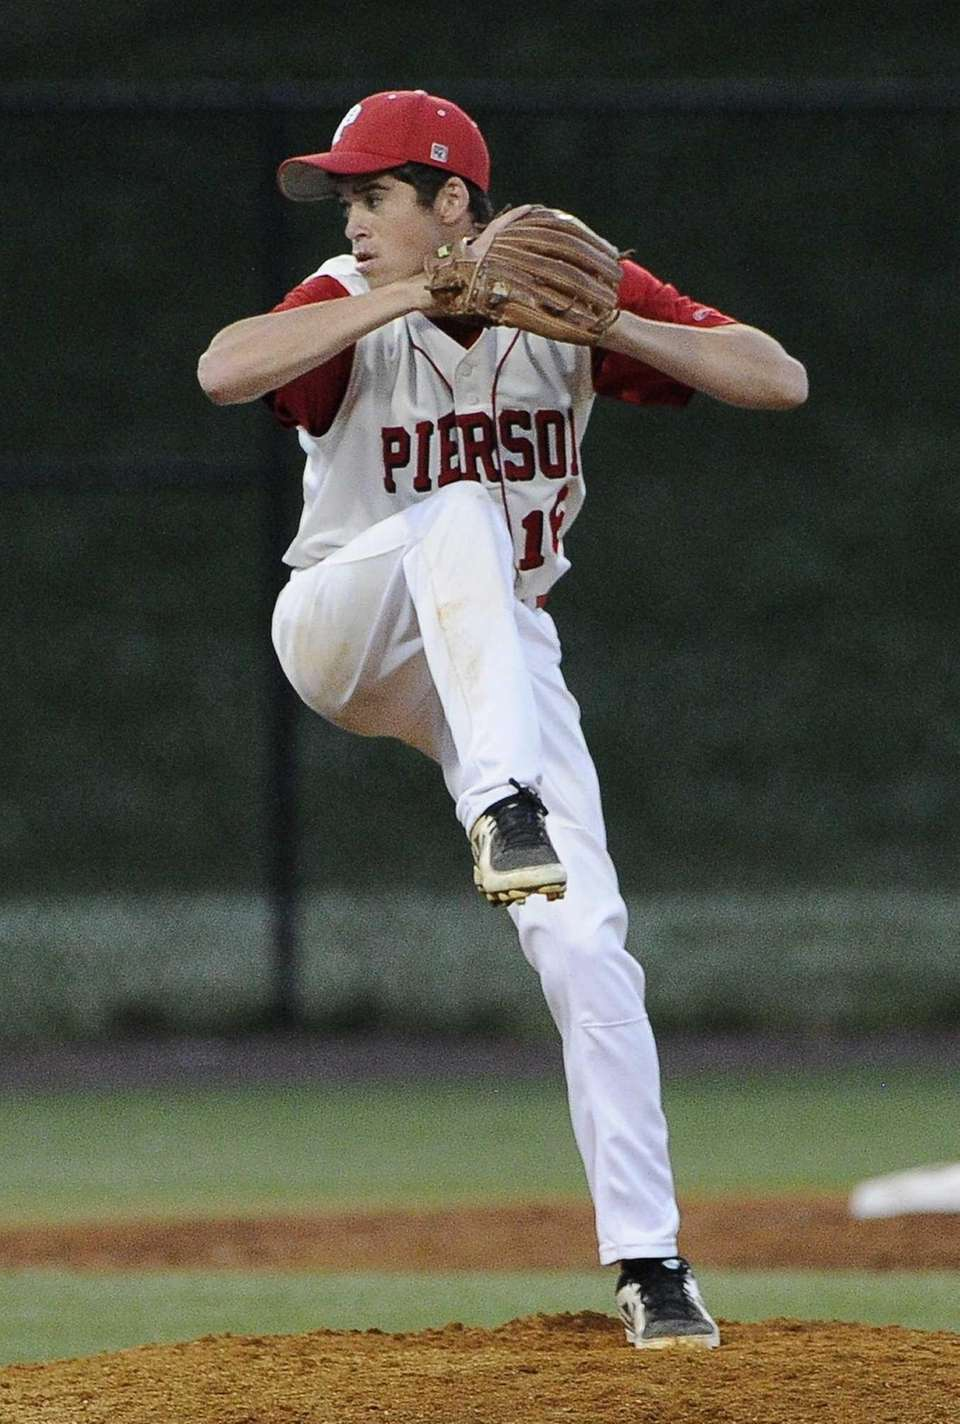 Pierson-Bridgehampton starting pitcher Colman Vila throws against Friends